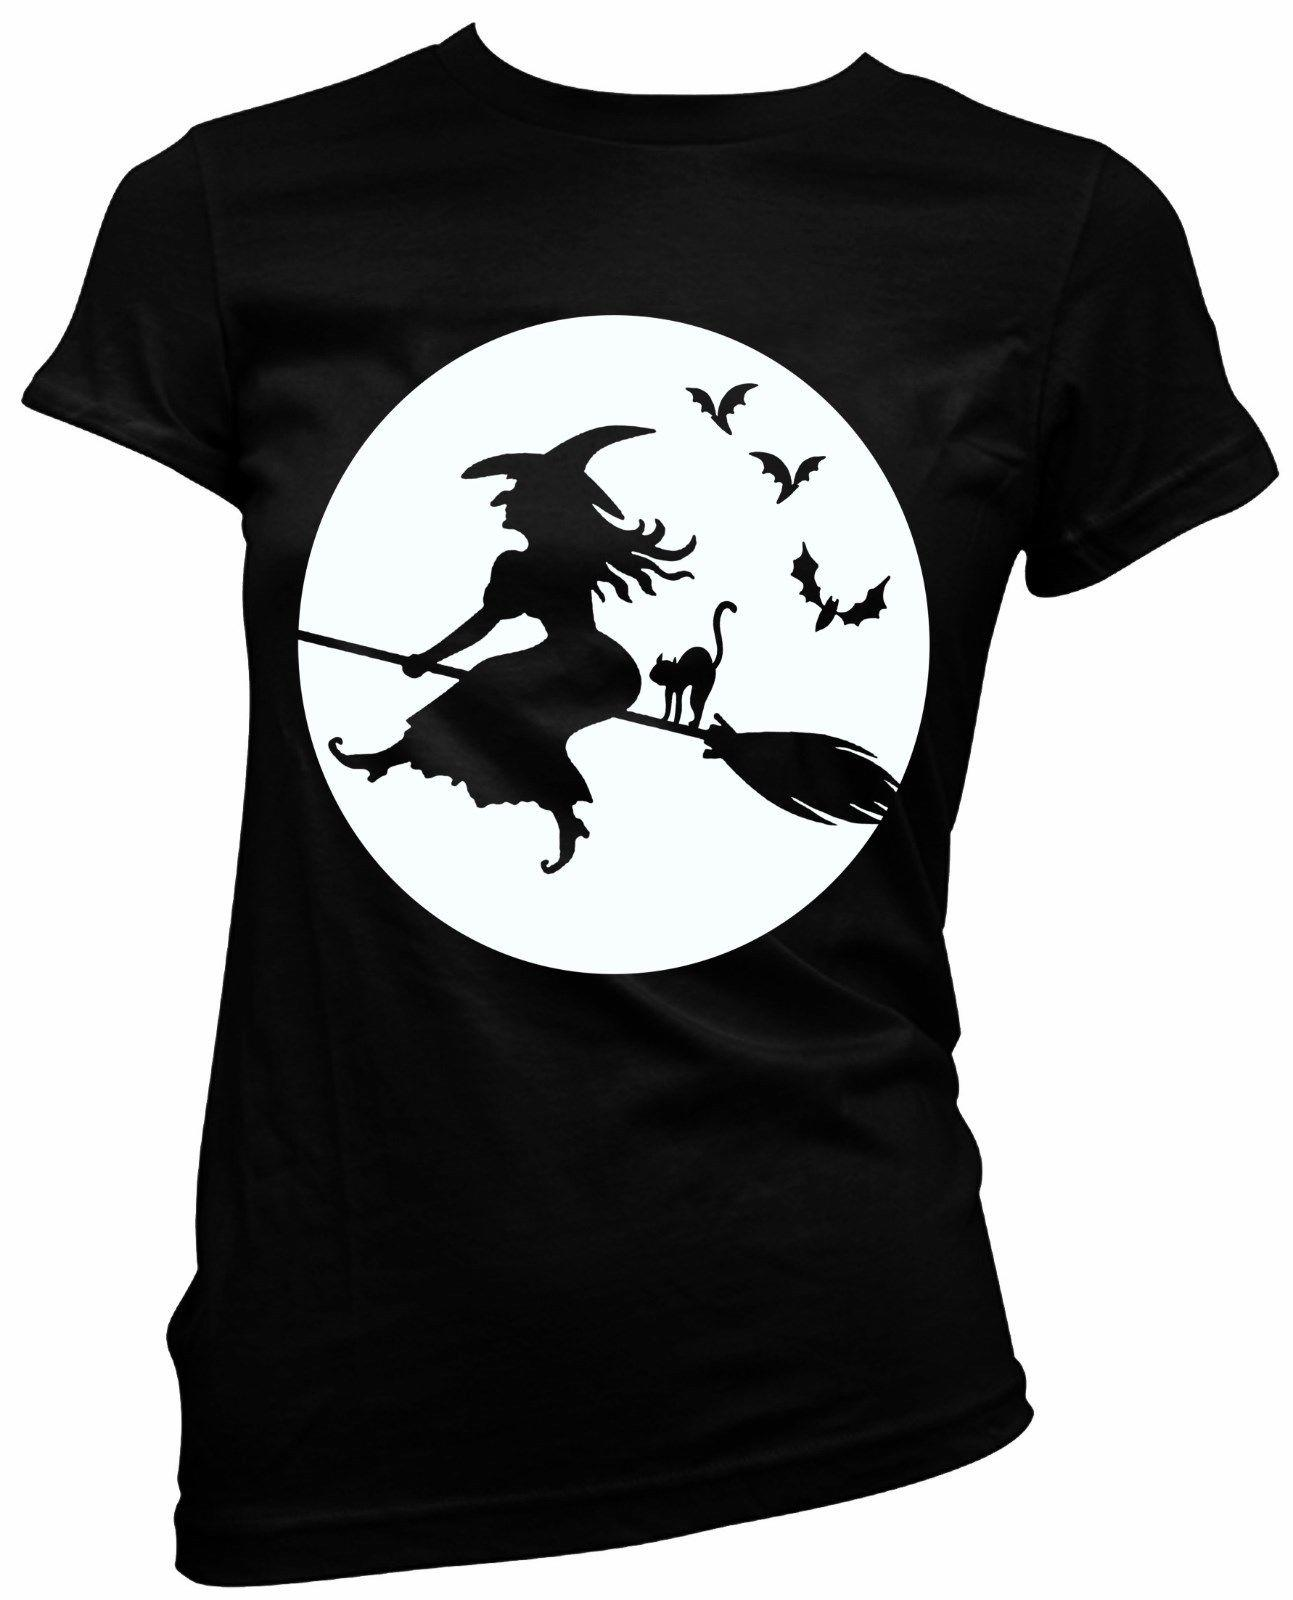 Halloween Witch broomstick full moon black cat ladies fitted t shirt fancy  dress Men Women Unisex Fashion tshirt Free Shipping